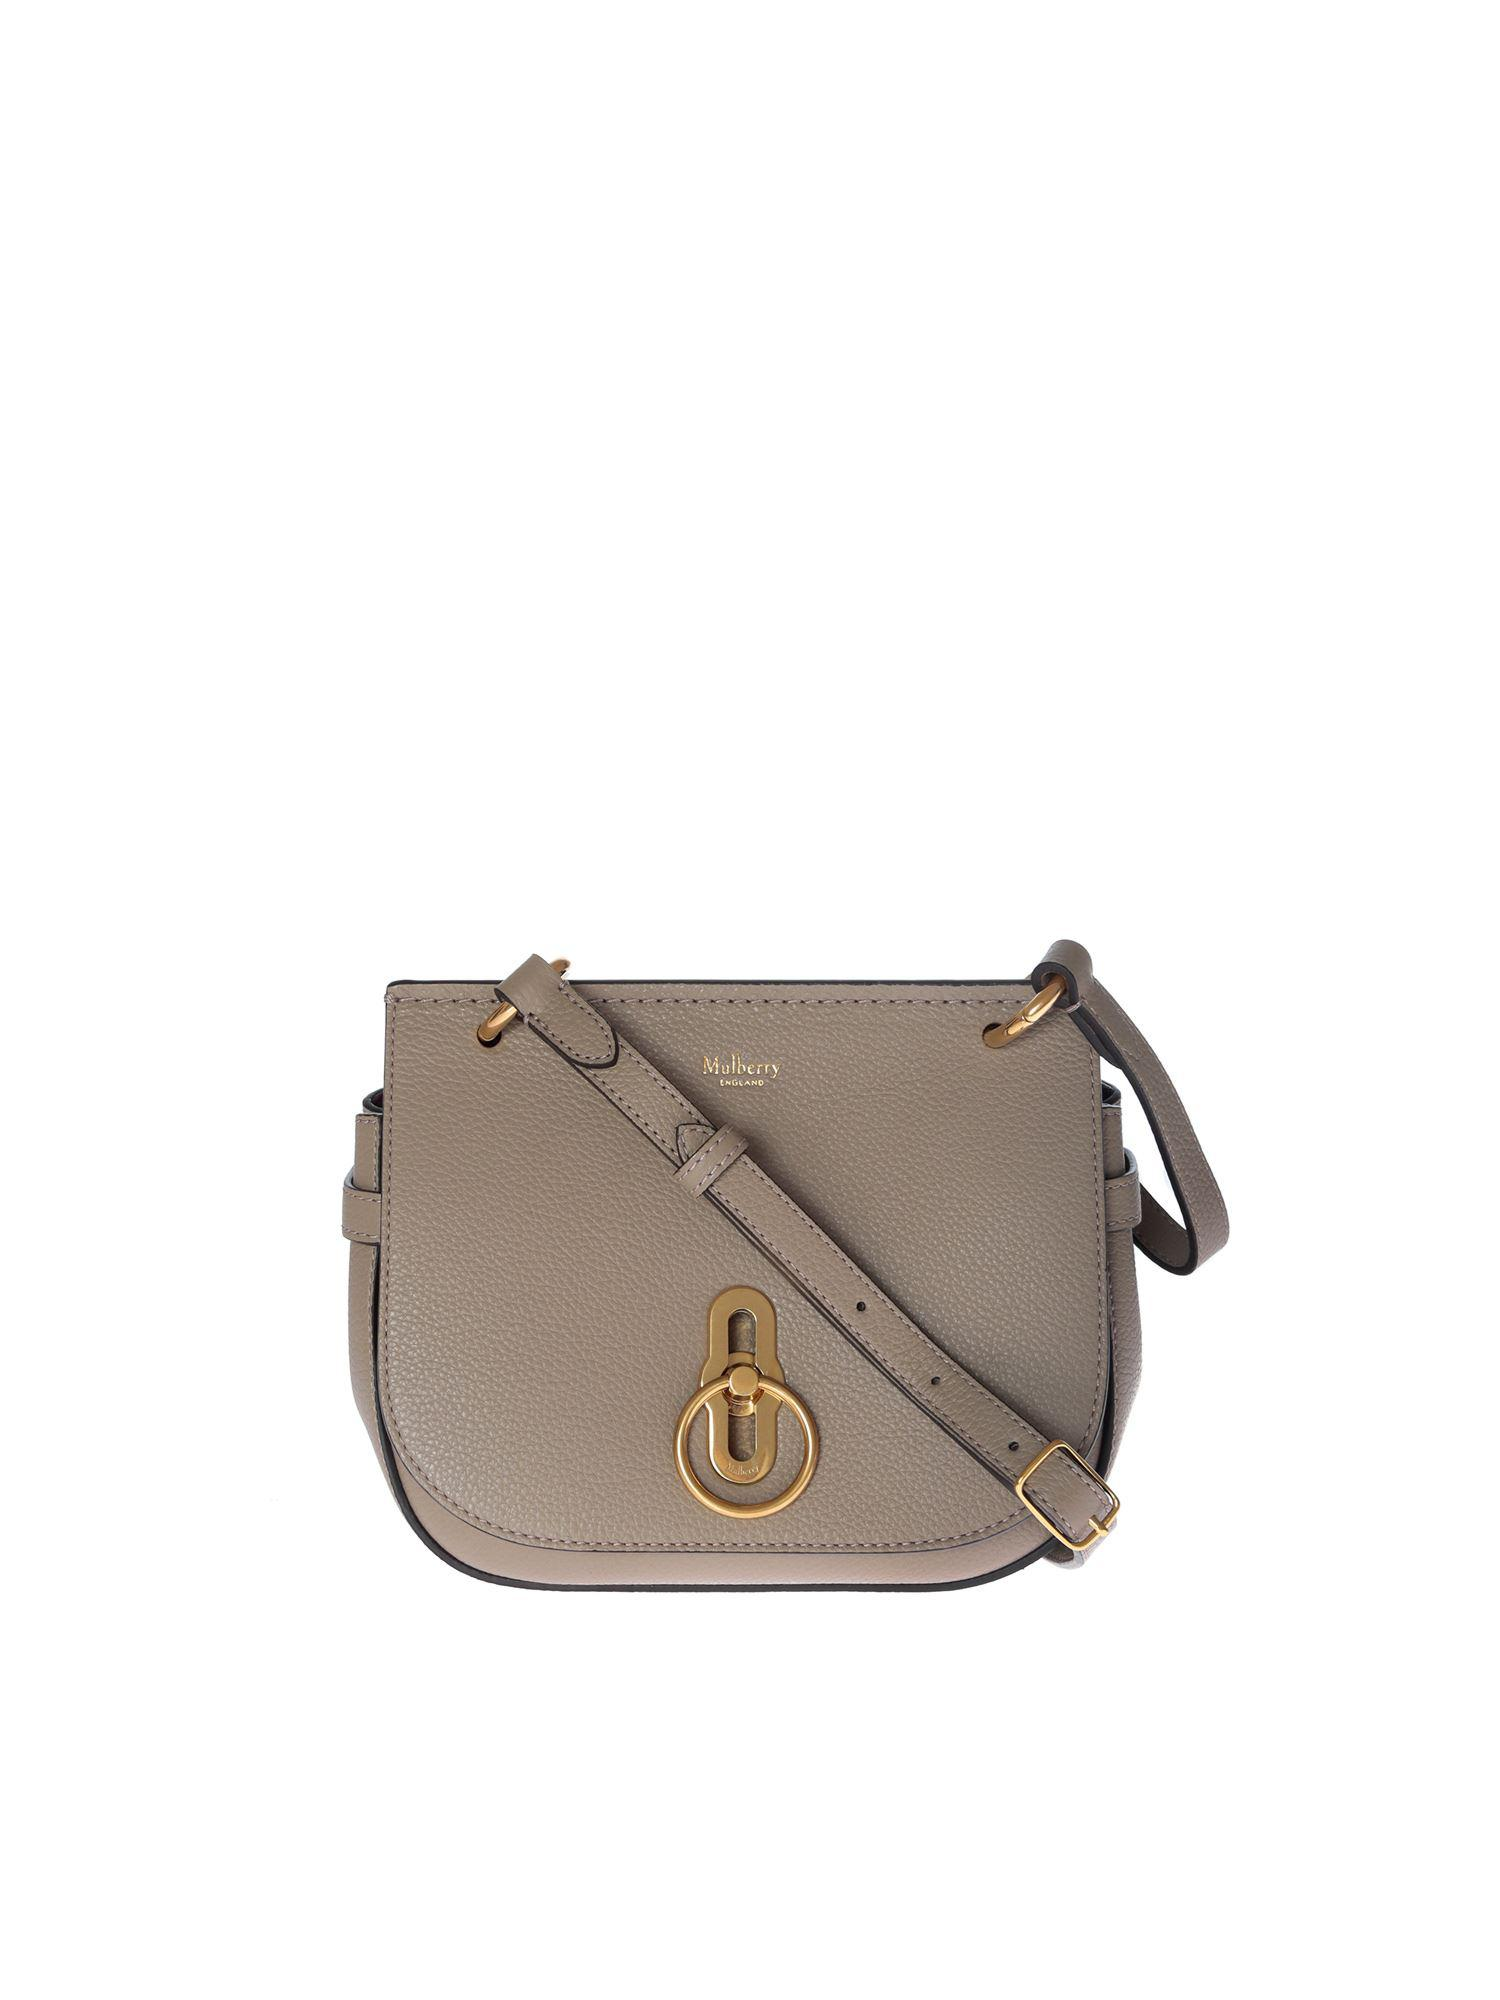 a2760c4b77b8 Mulberry - Gray Small Amberley Satchel Bag In Dove Grey Leather - Lyst.  View fullscreen